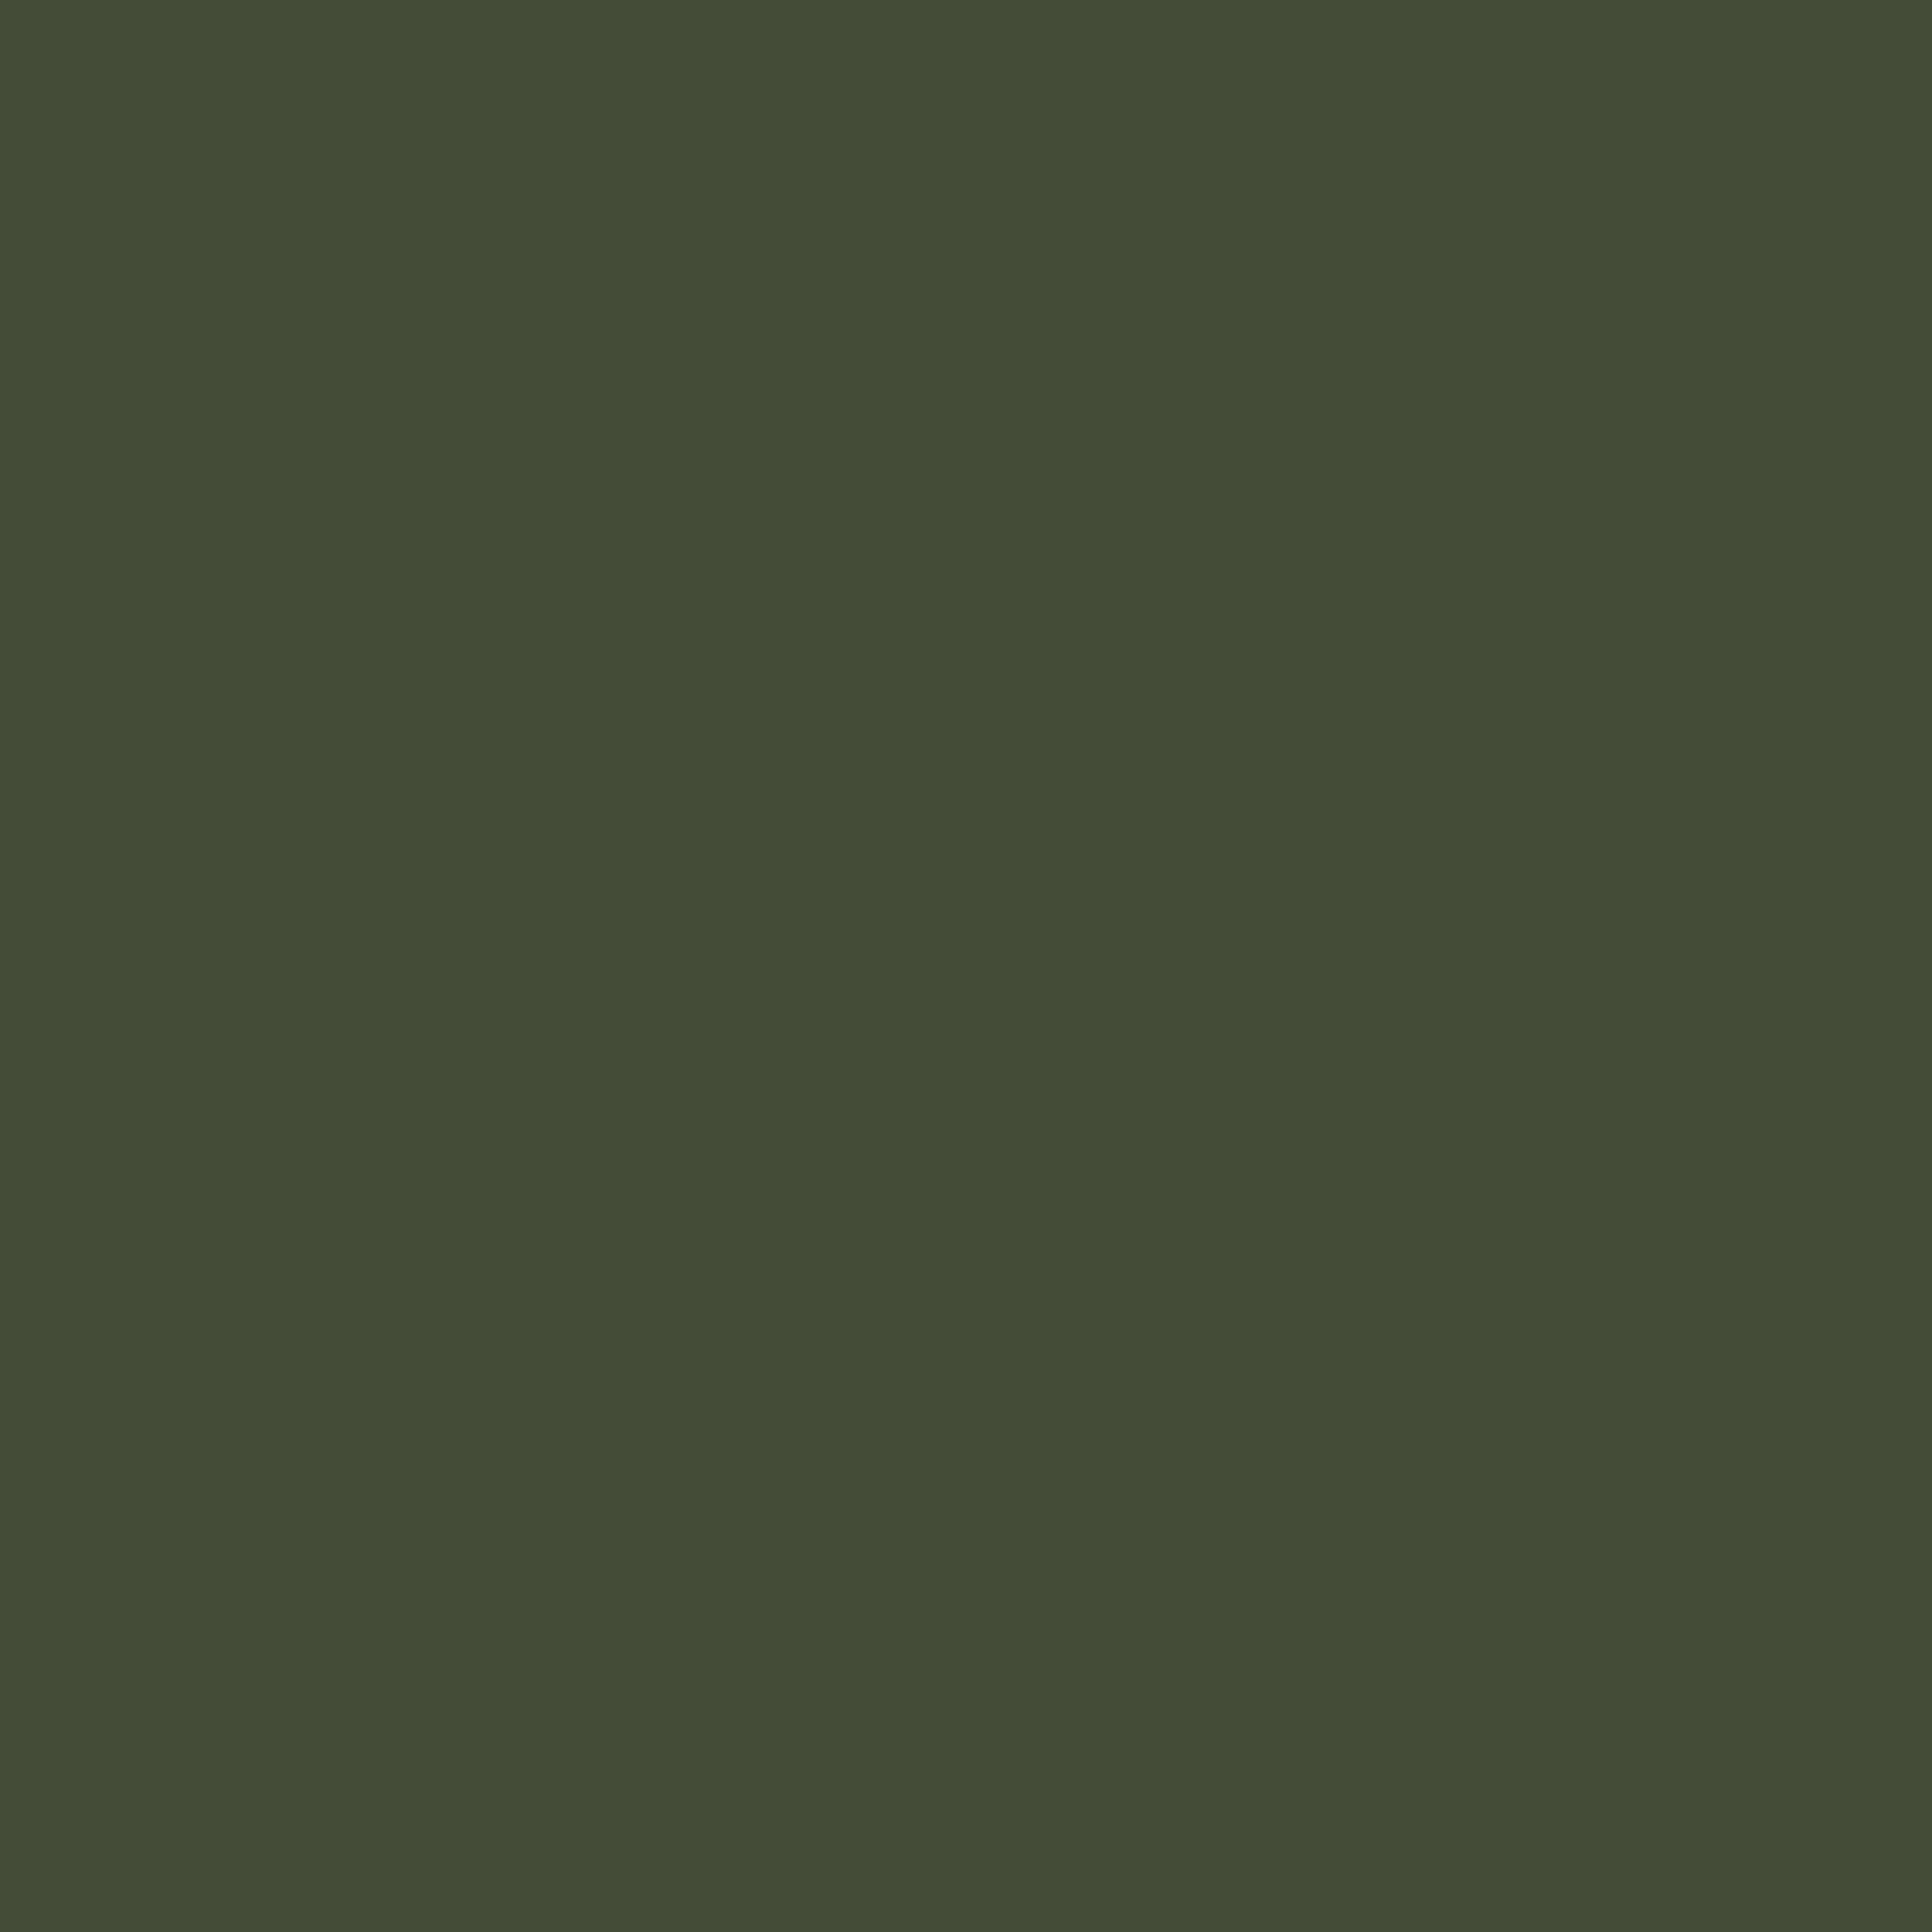 3600x3600 Rifle Green Solid Color Background